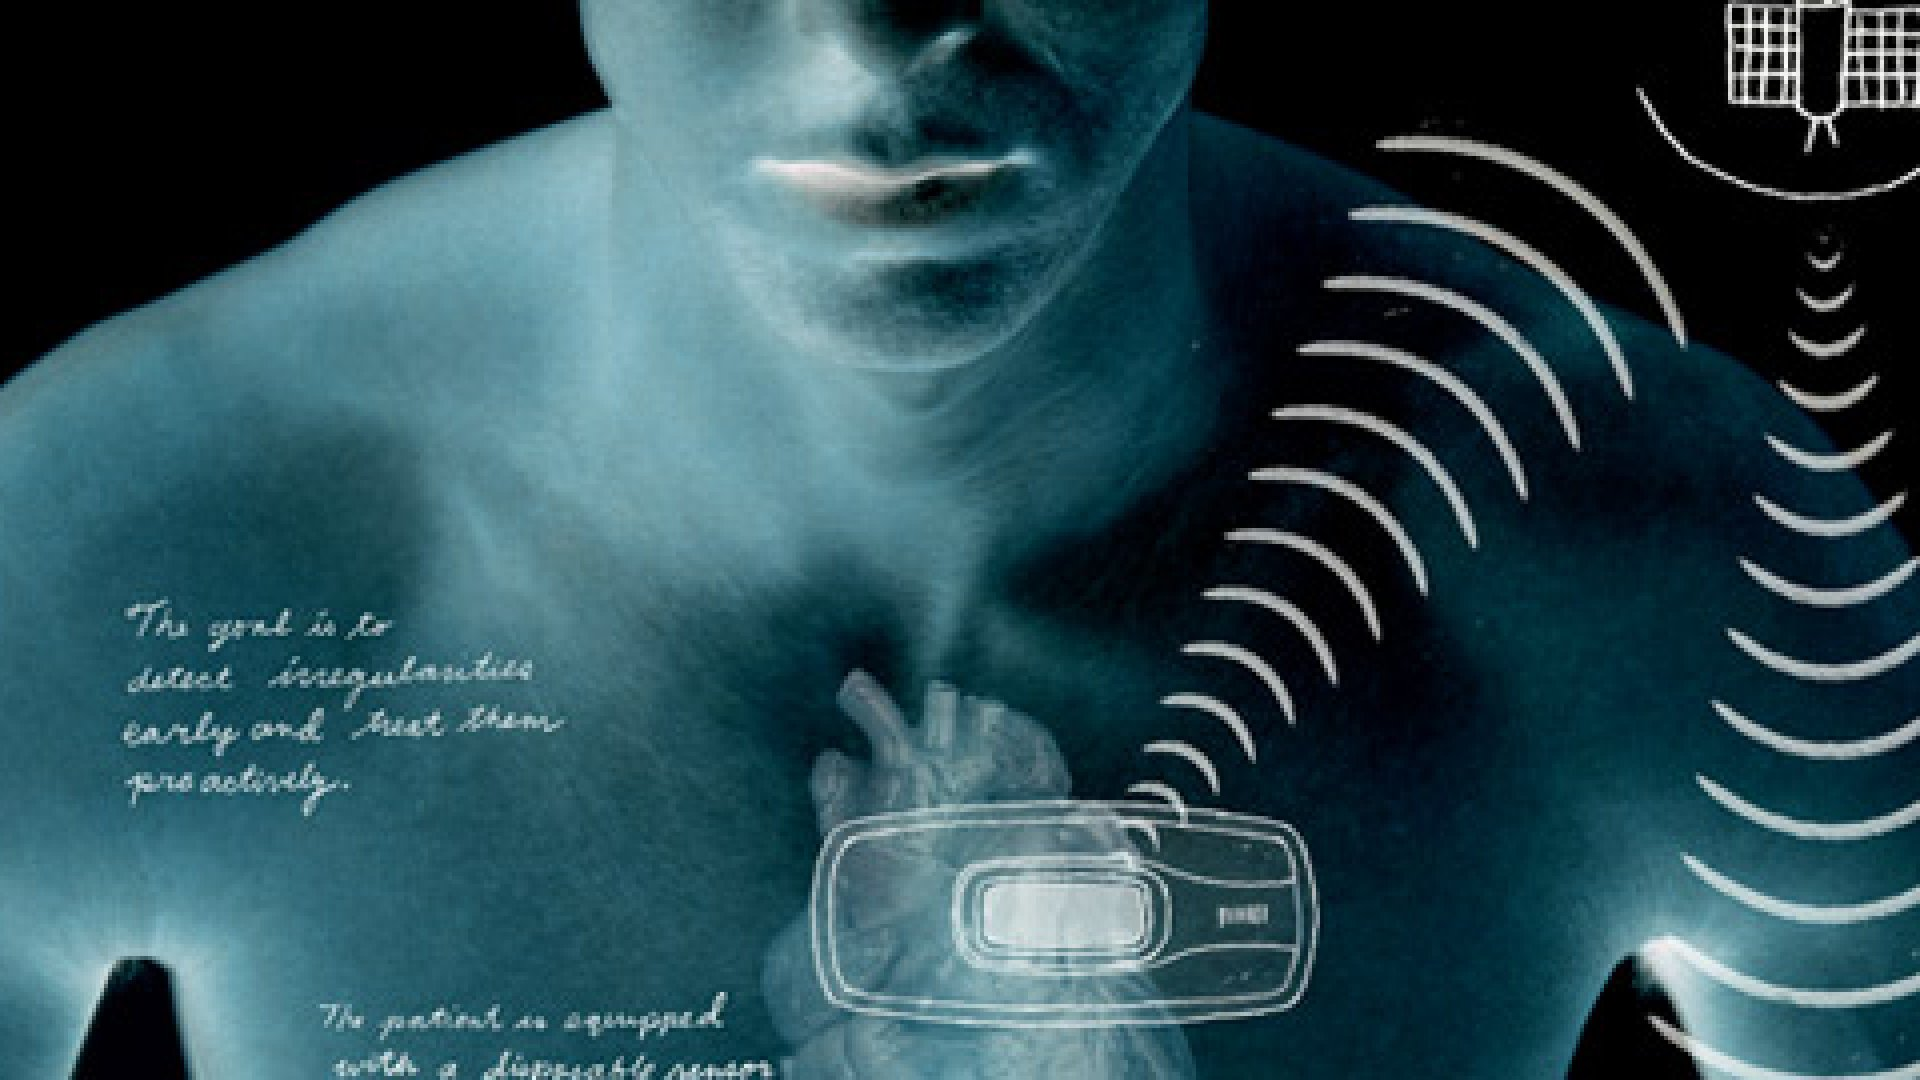 <strong>TRUE BLOOD</strong> Corventis's cardiac monitor feeds a stream of data to doctors.